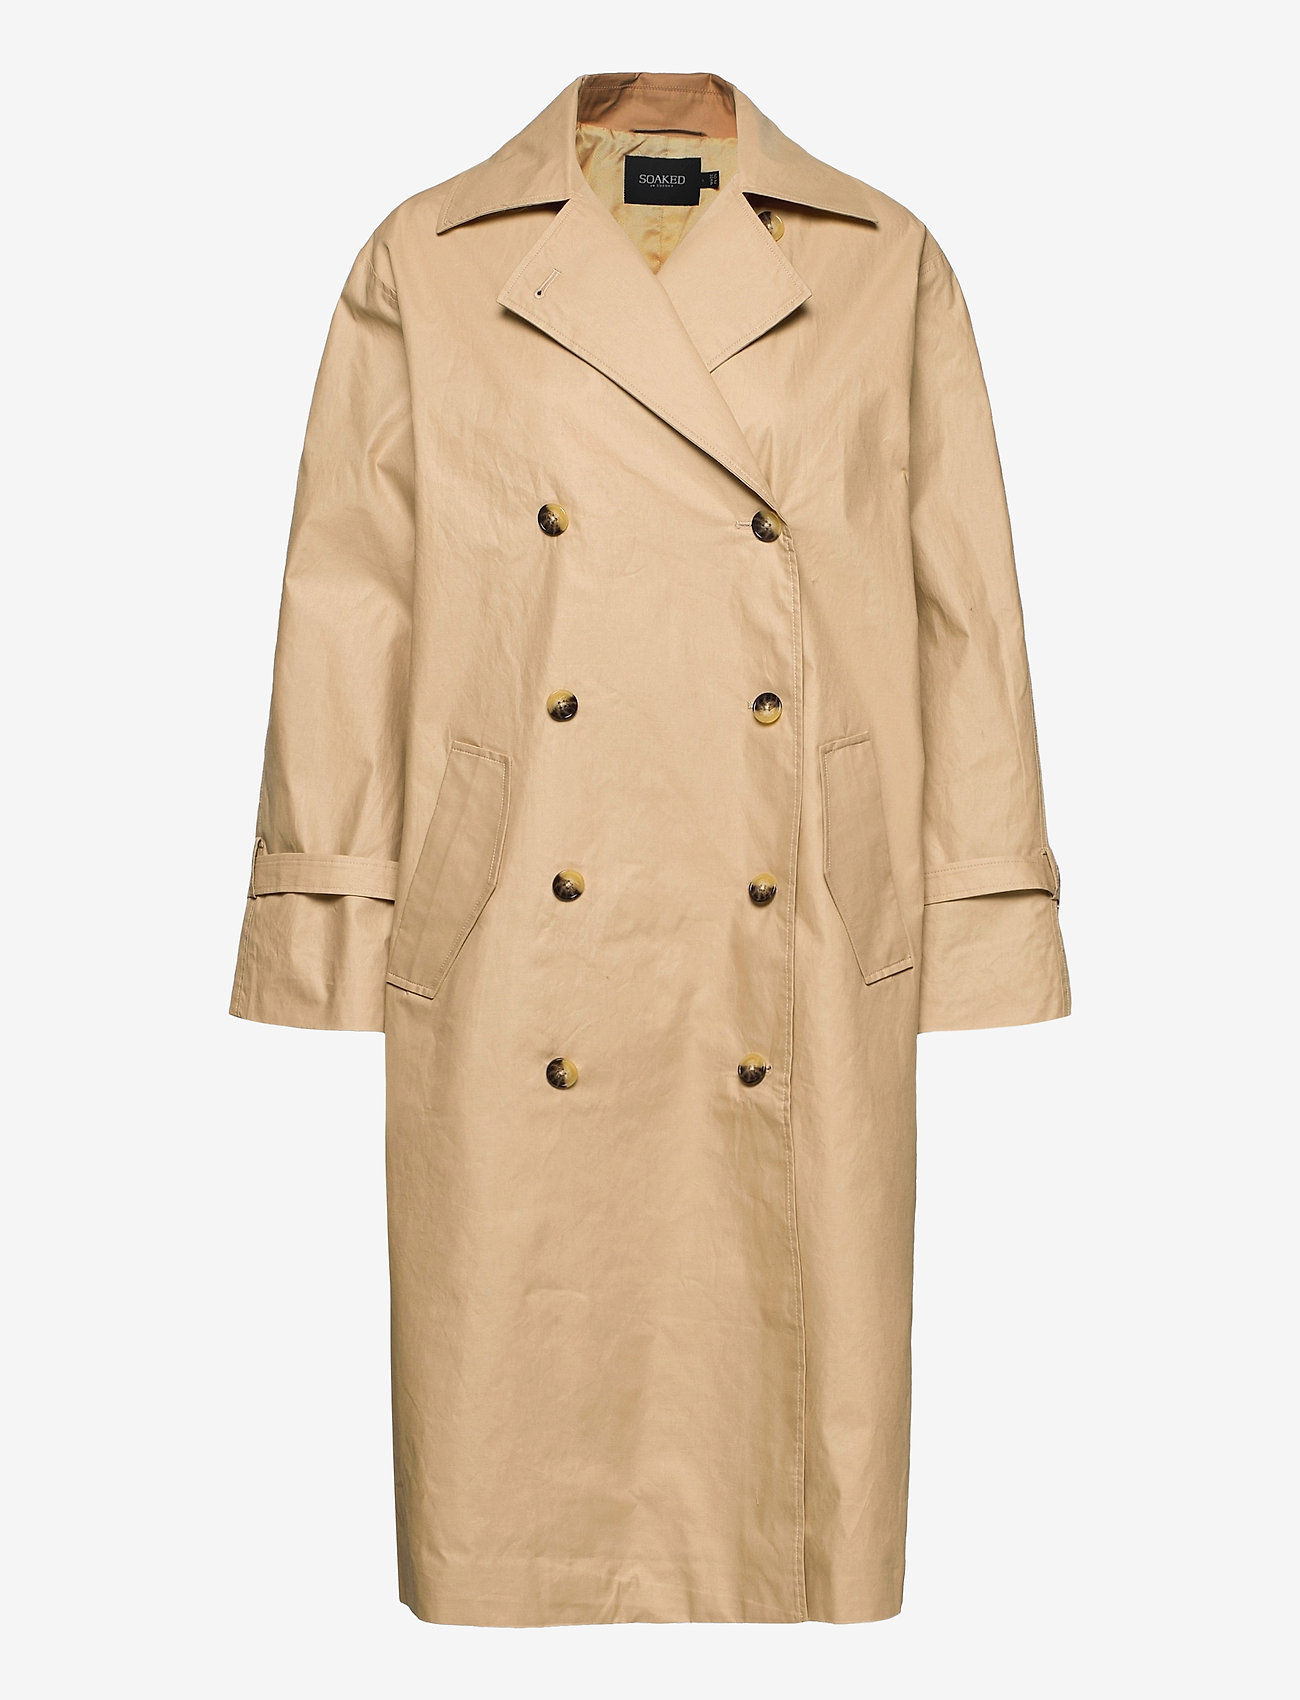 Soaked in Luxury - SLOhio Trench Coat - trenchcoats - curds & whey - 1